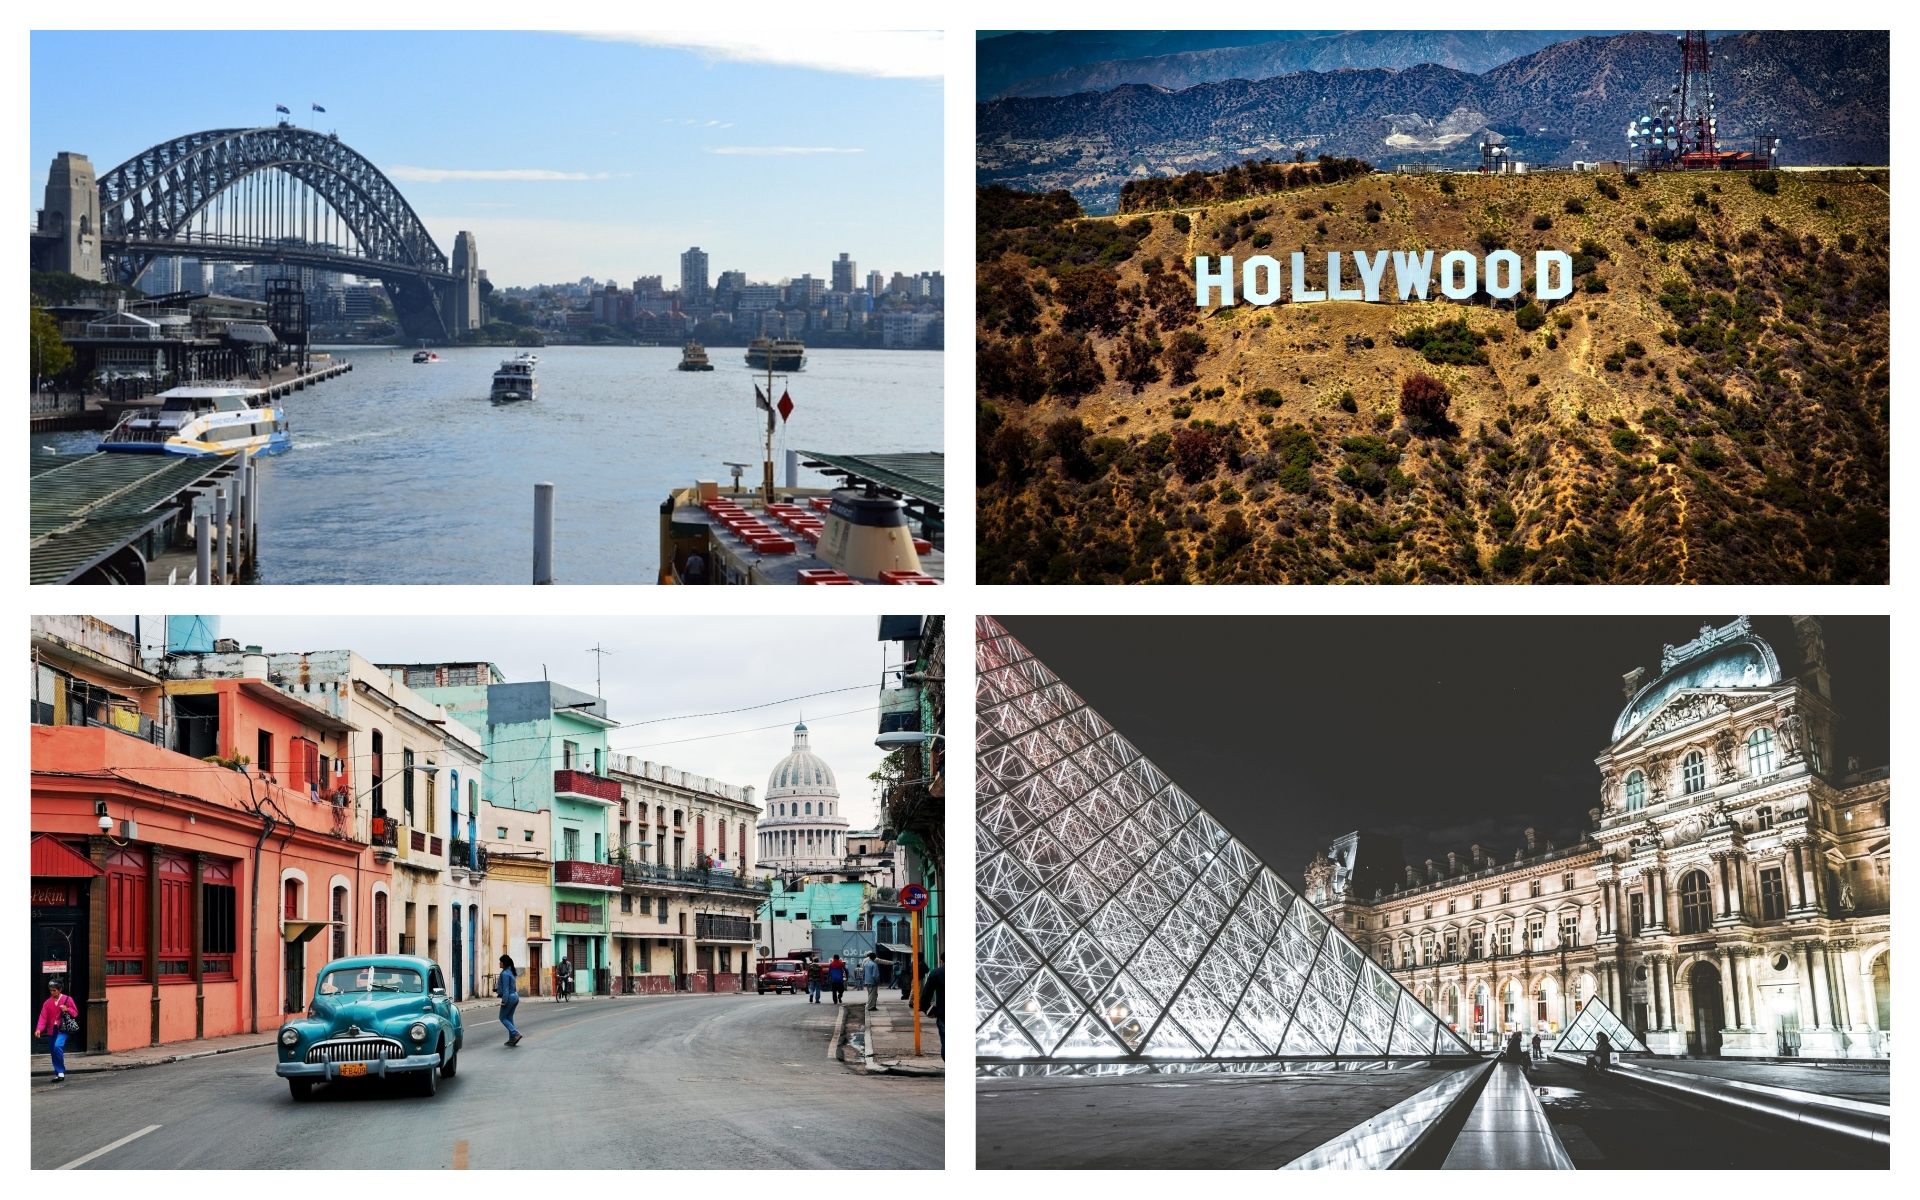 Photos of Sydney Harbour, The Hollywood Sign, Havana, Cuba, and the Louvre museum in Paris